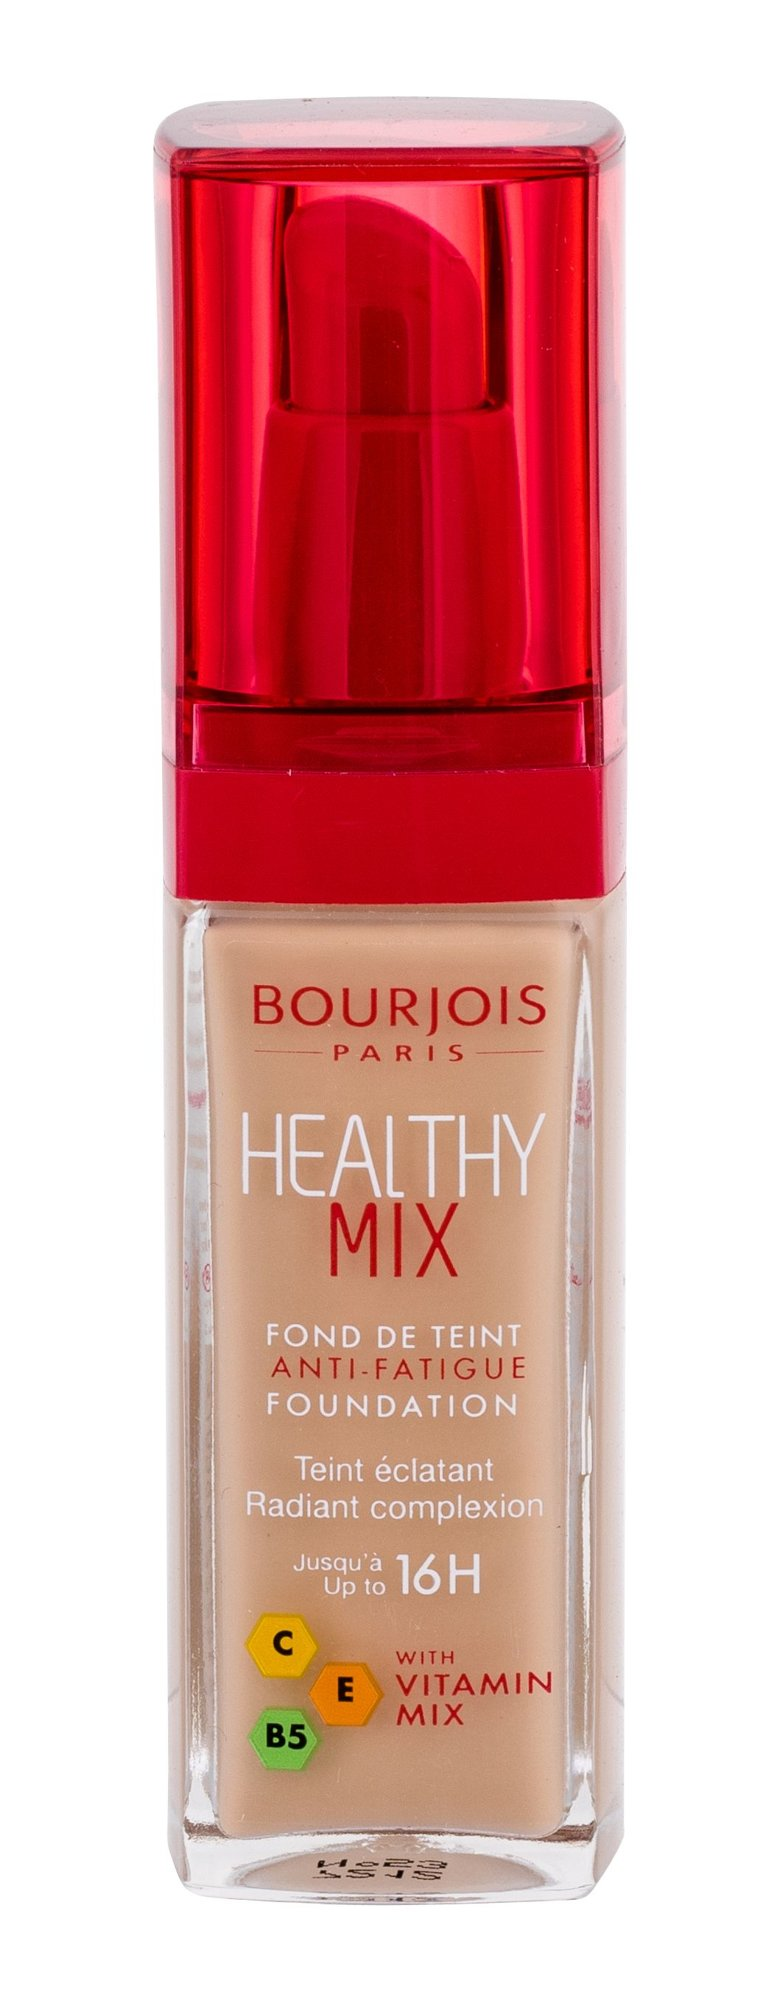 BOURJOIS Paris Healthy Mix Cosmetic 30ml 53 Light Beige